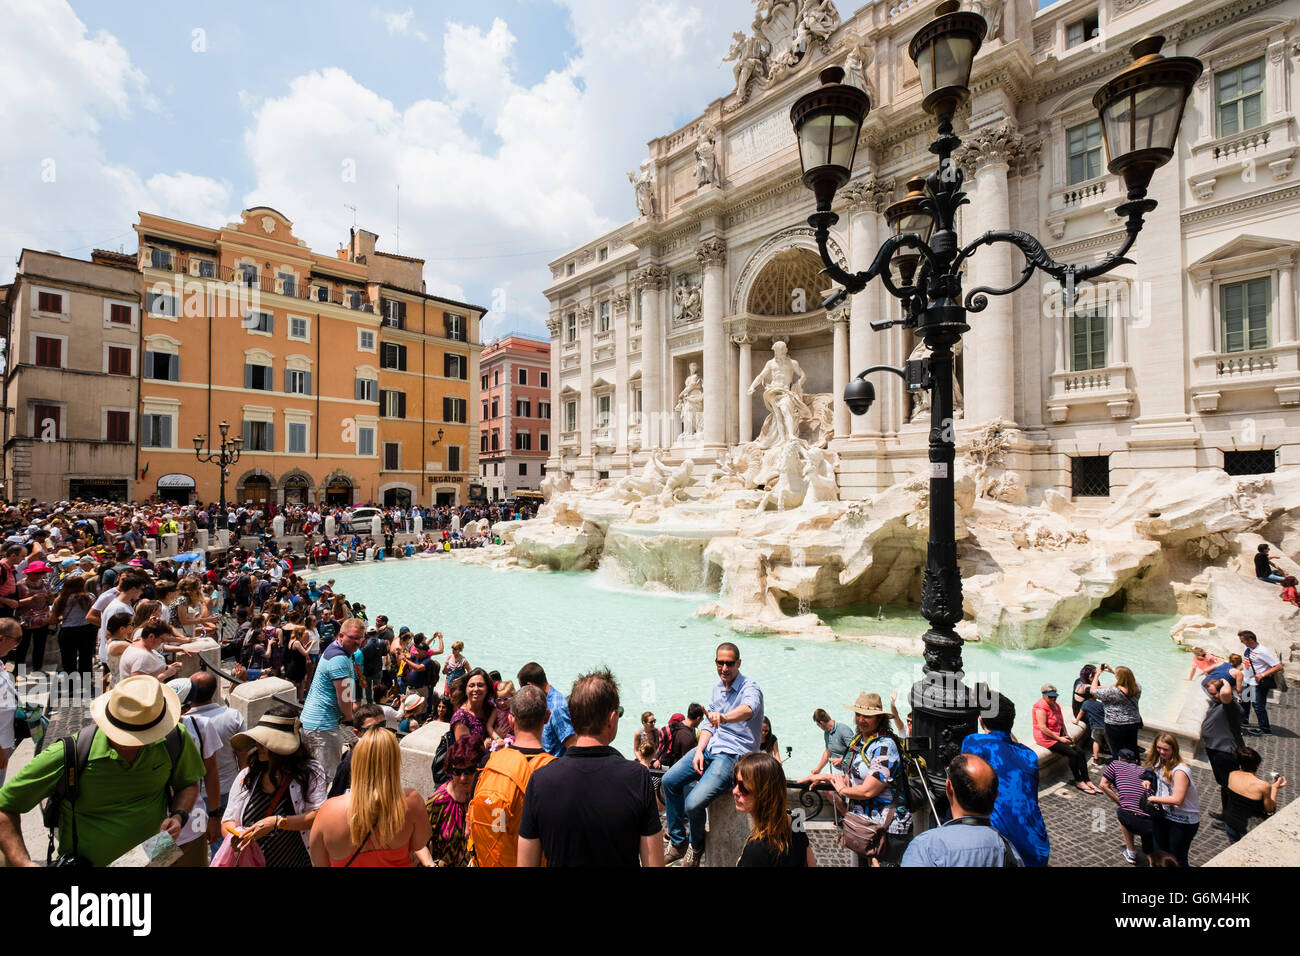 Trevi Fountain or Fontana di Trevia with many tourists in Rome Italy - Stock Image